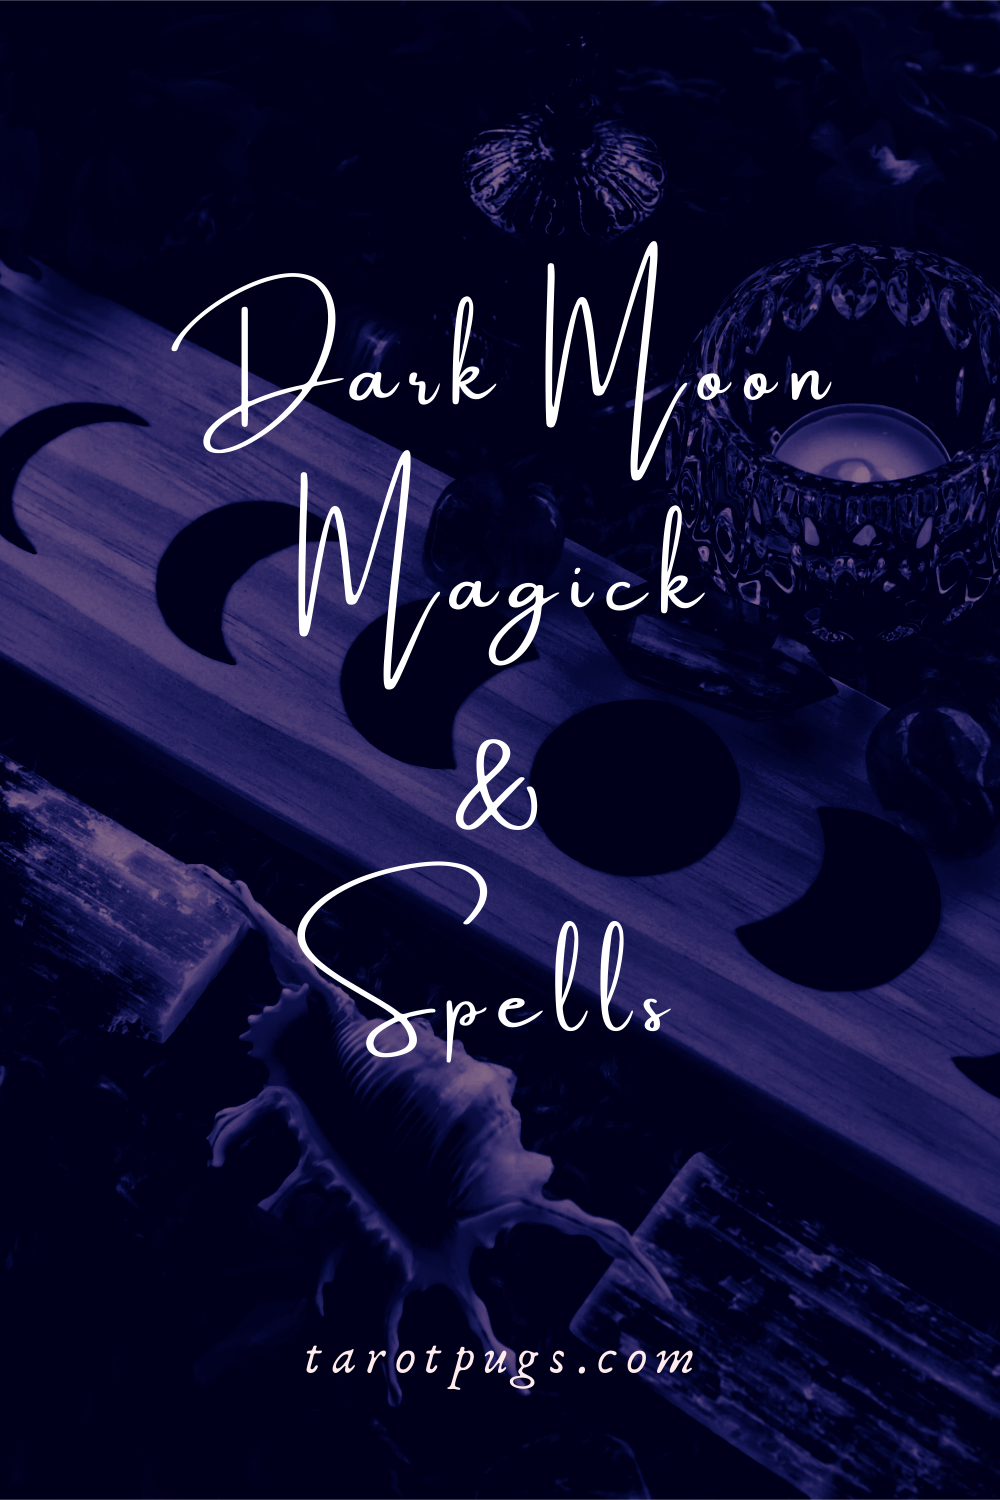 Learn how to work with the dark moon phase with these spells and magick in witchcraft. #darkmoon #magick #spells #witchcraft